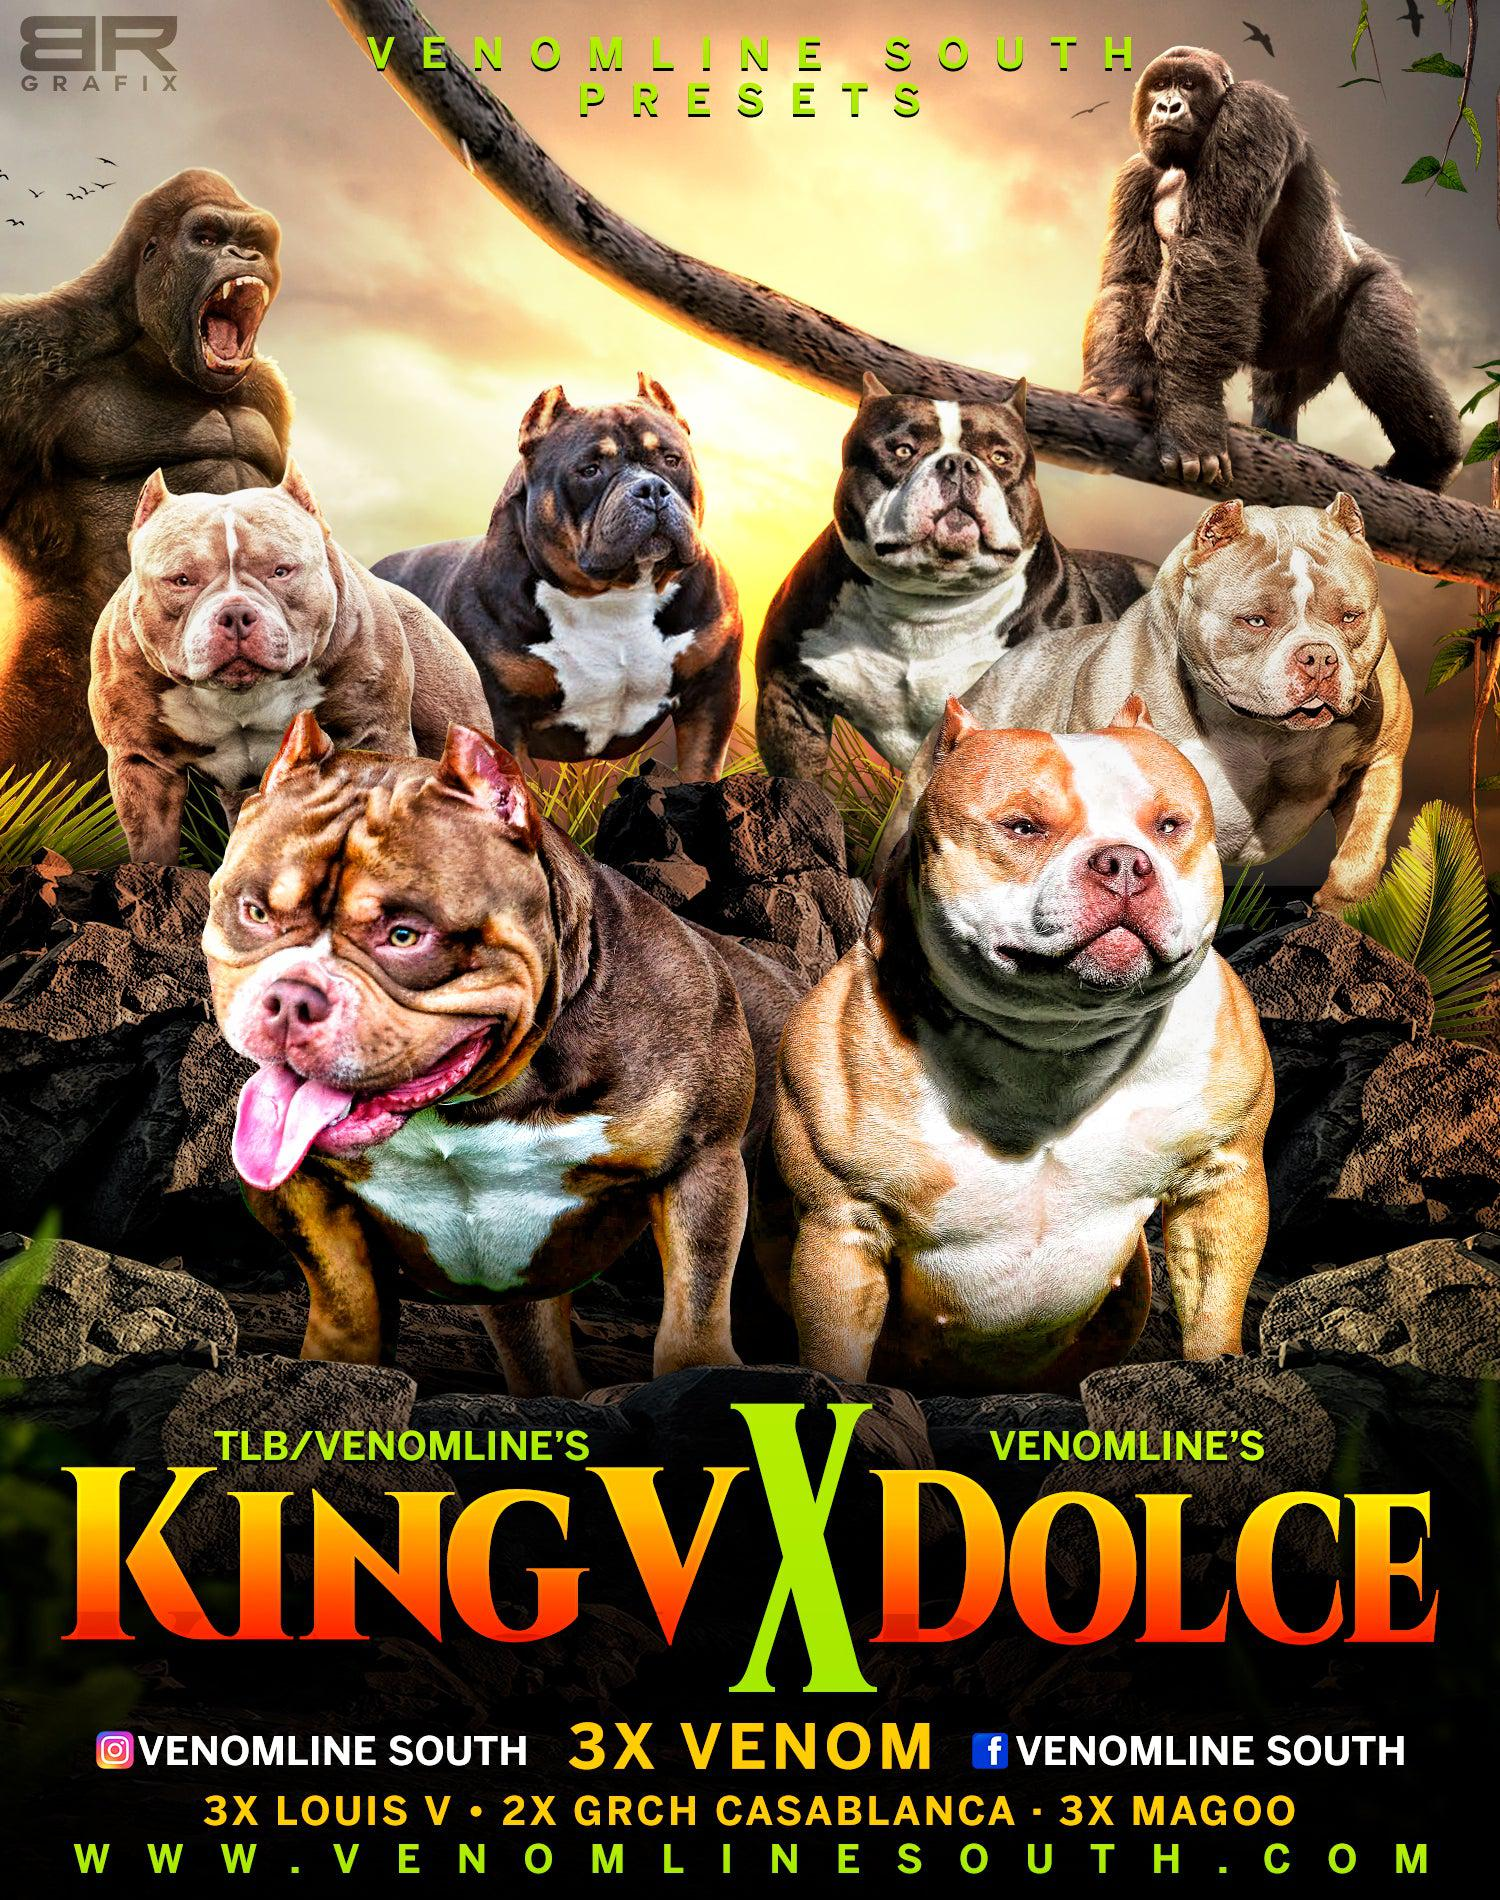 Extreme Pocket & Micro Bullies, #1 Rated Pocket Bully Breeders, Champion Bloodlines, Top American Bully Kennels, American Bully Breeders, Puppies For Sale